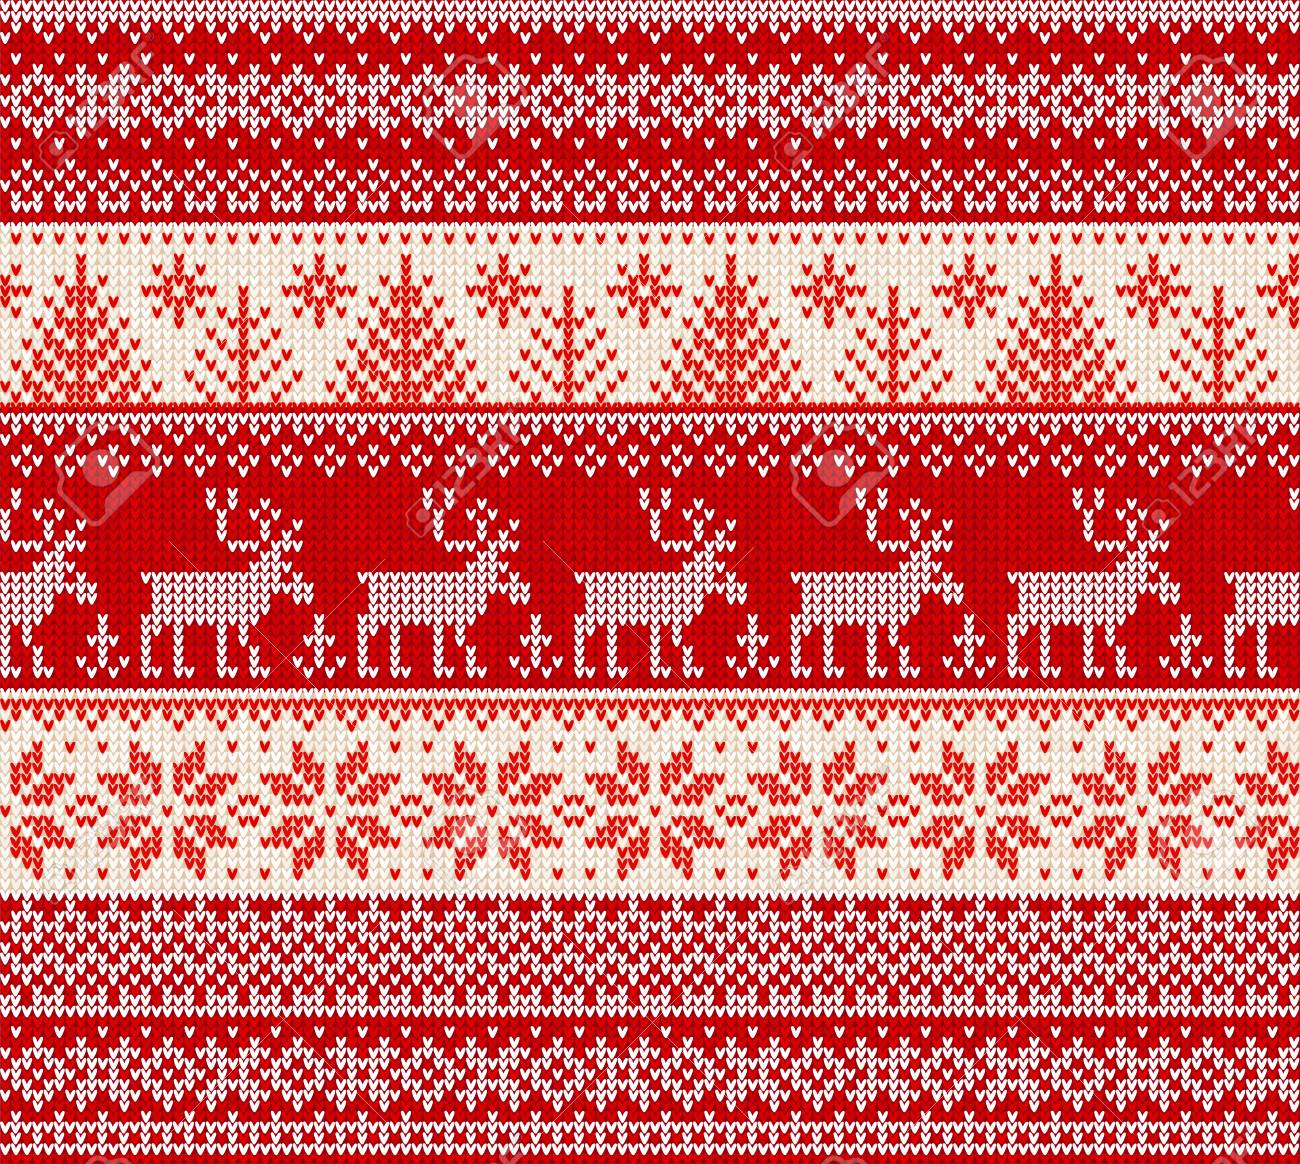 Ugly Sweater Merry Christmas Happy New Year Vector Illustration Royalty Free Cliparts Vectors And Stock Illustration Image 127682775